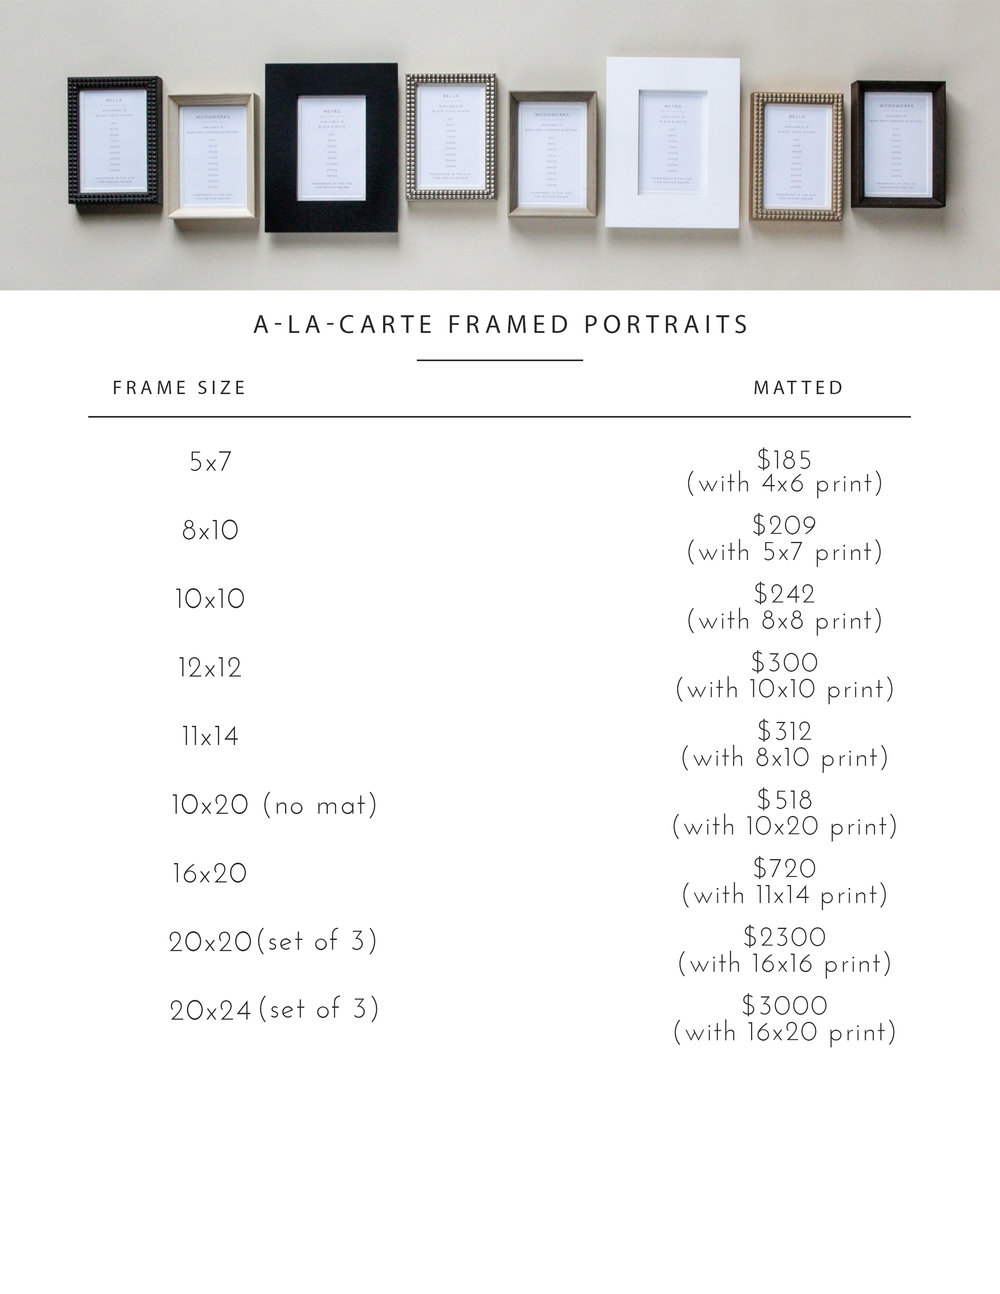 frame prices al la carte.jpg